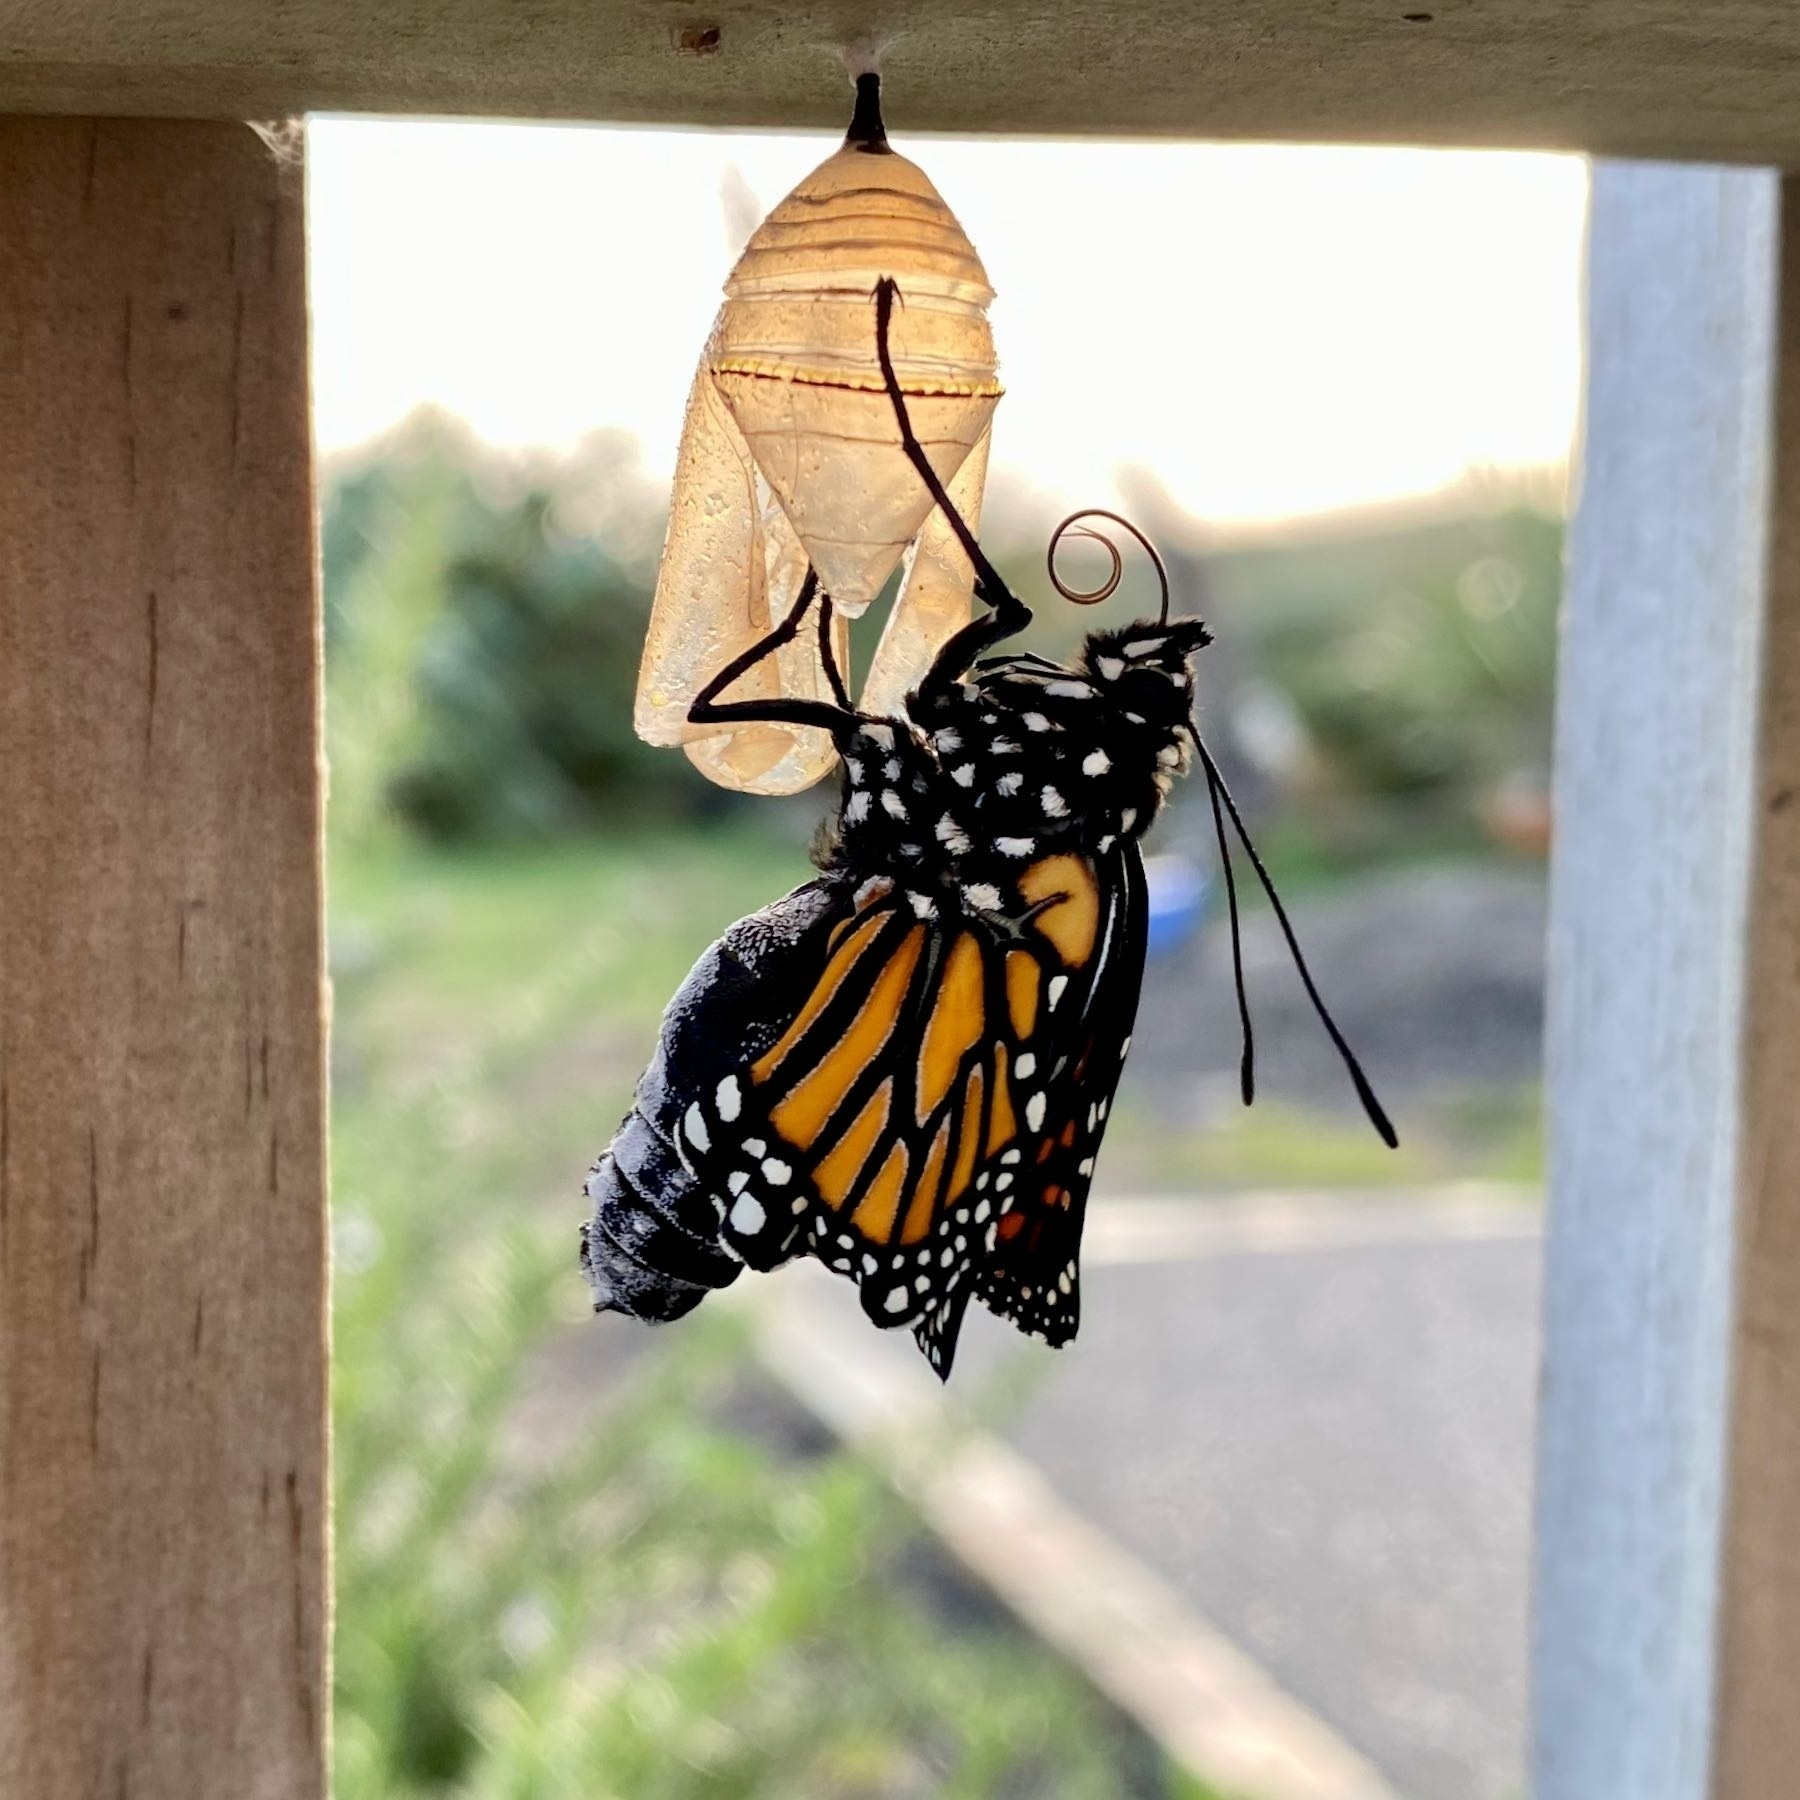 Monarch butterfly clinging onto its chrysalis.